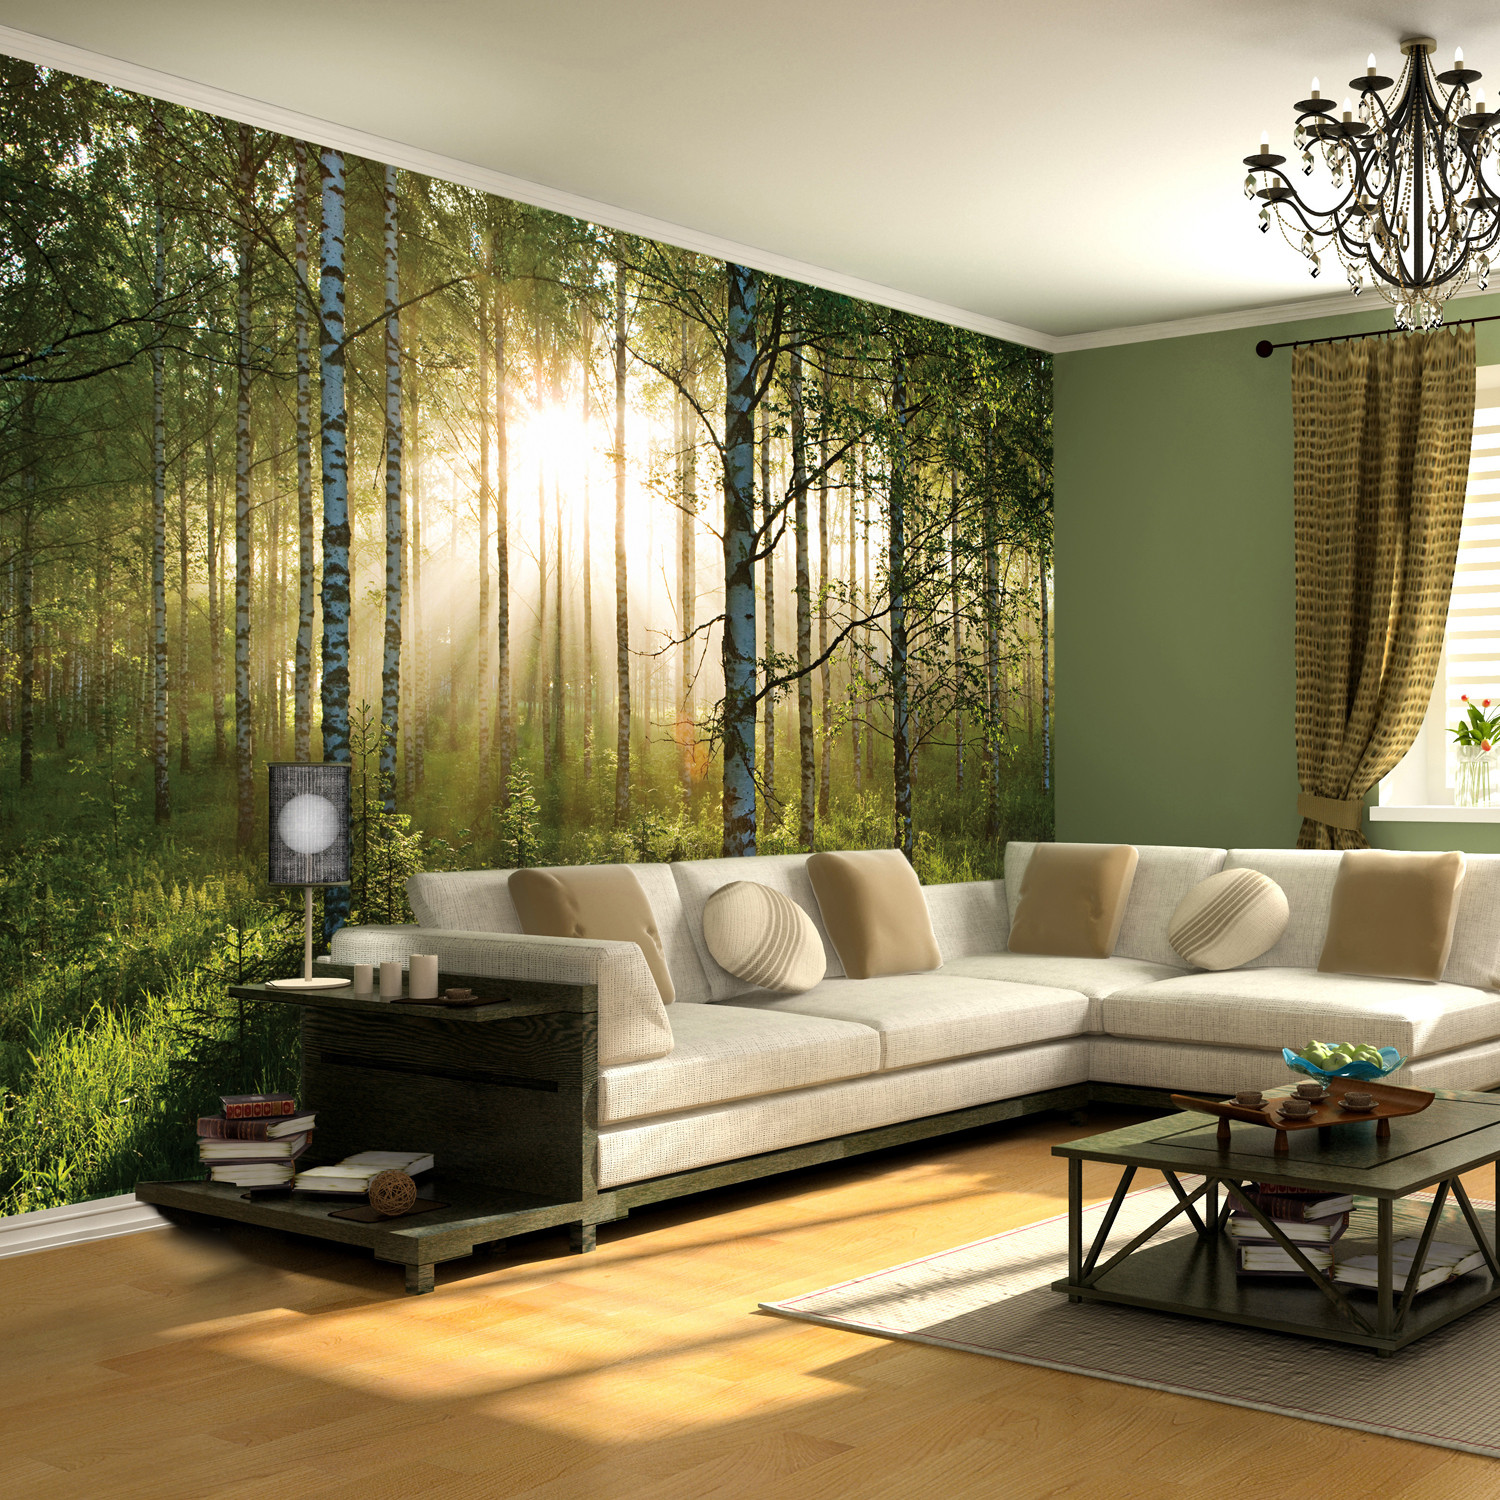 Forest scene 1 wall murals touch of modern for Wall scenes